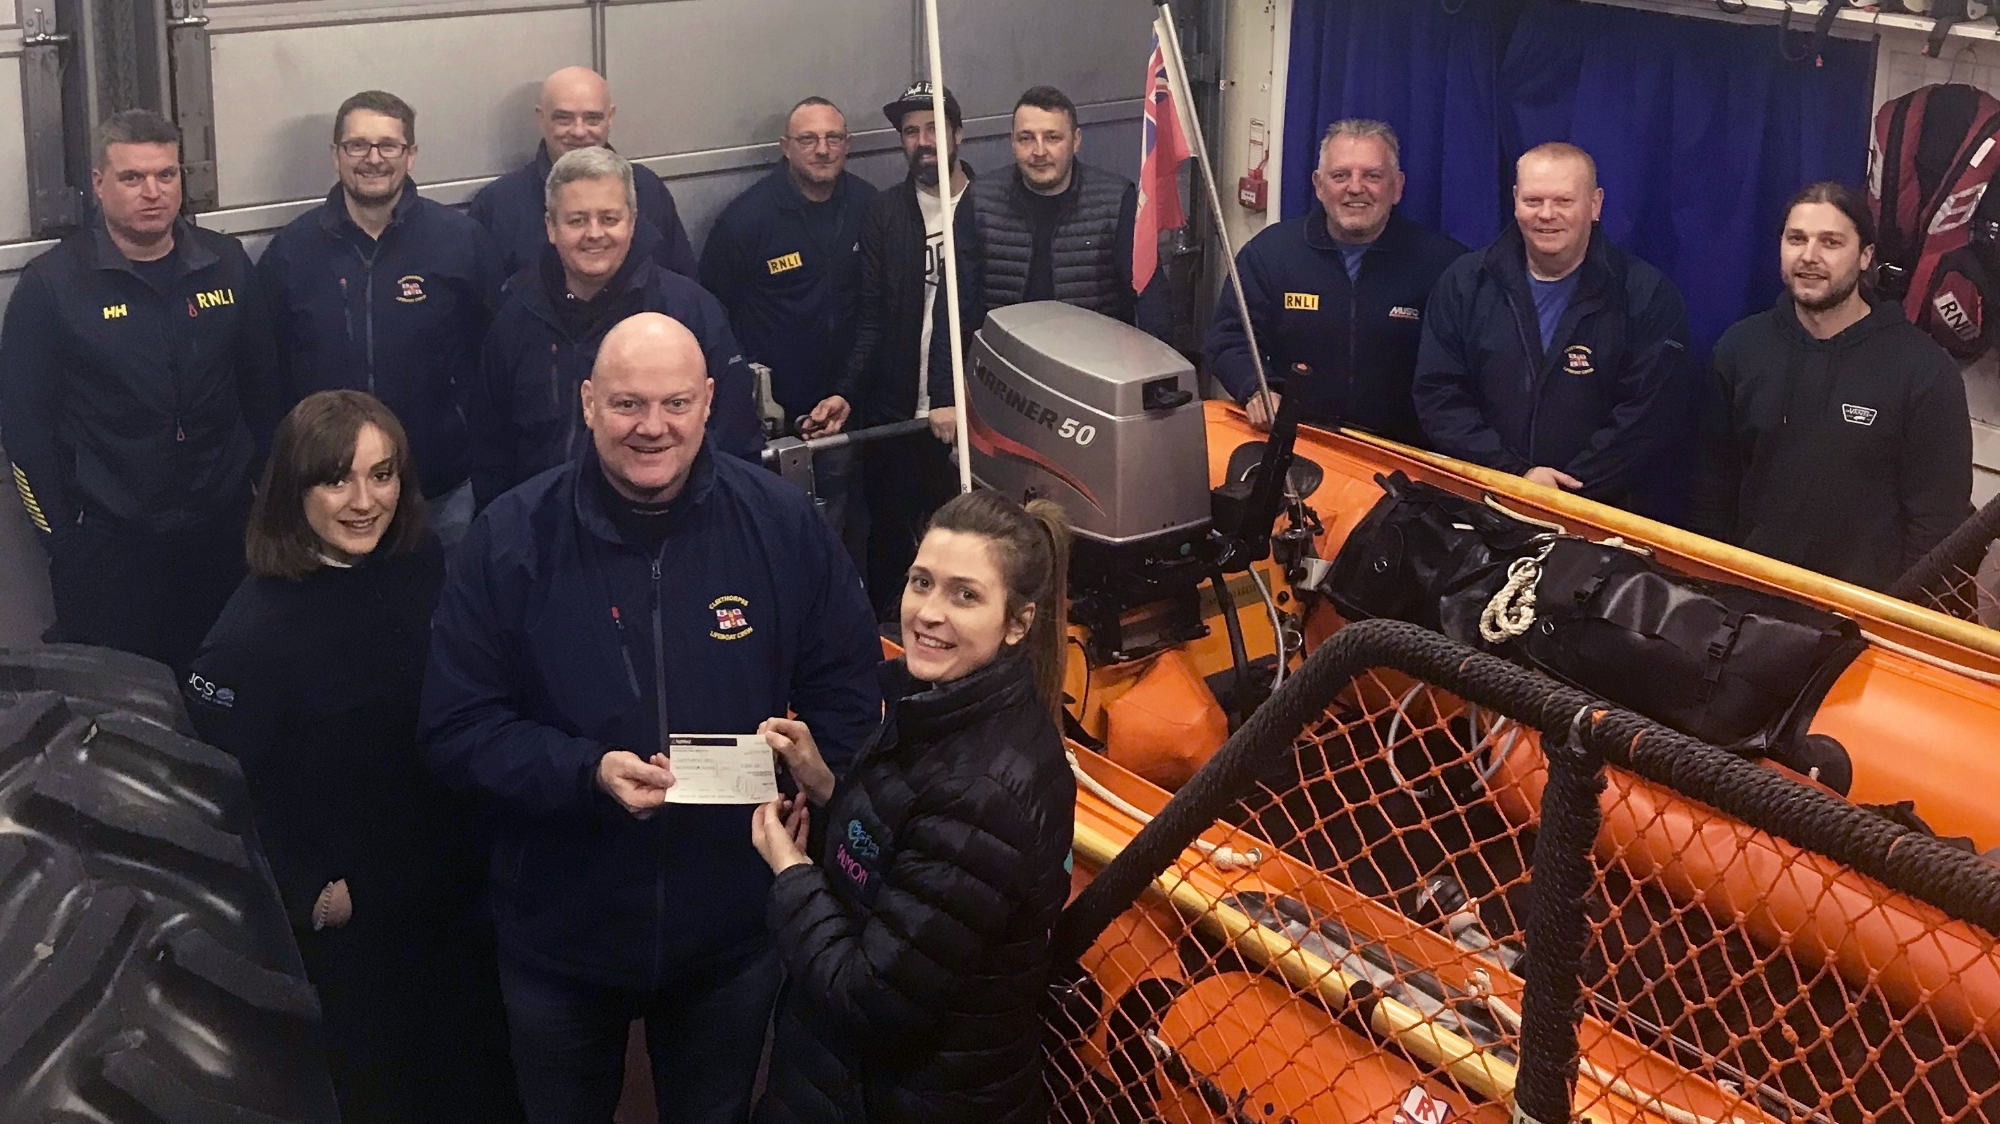 A cheque for the RNLI at Cleethorpes